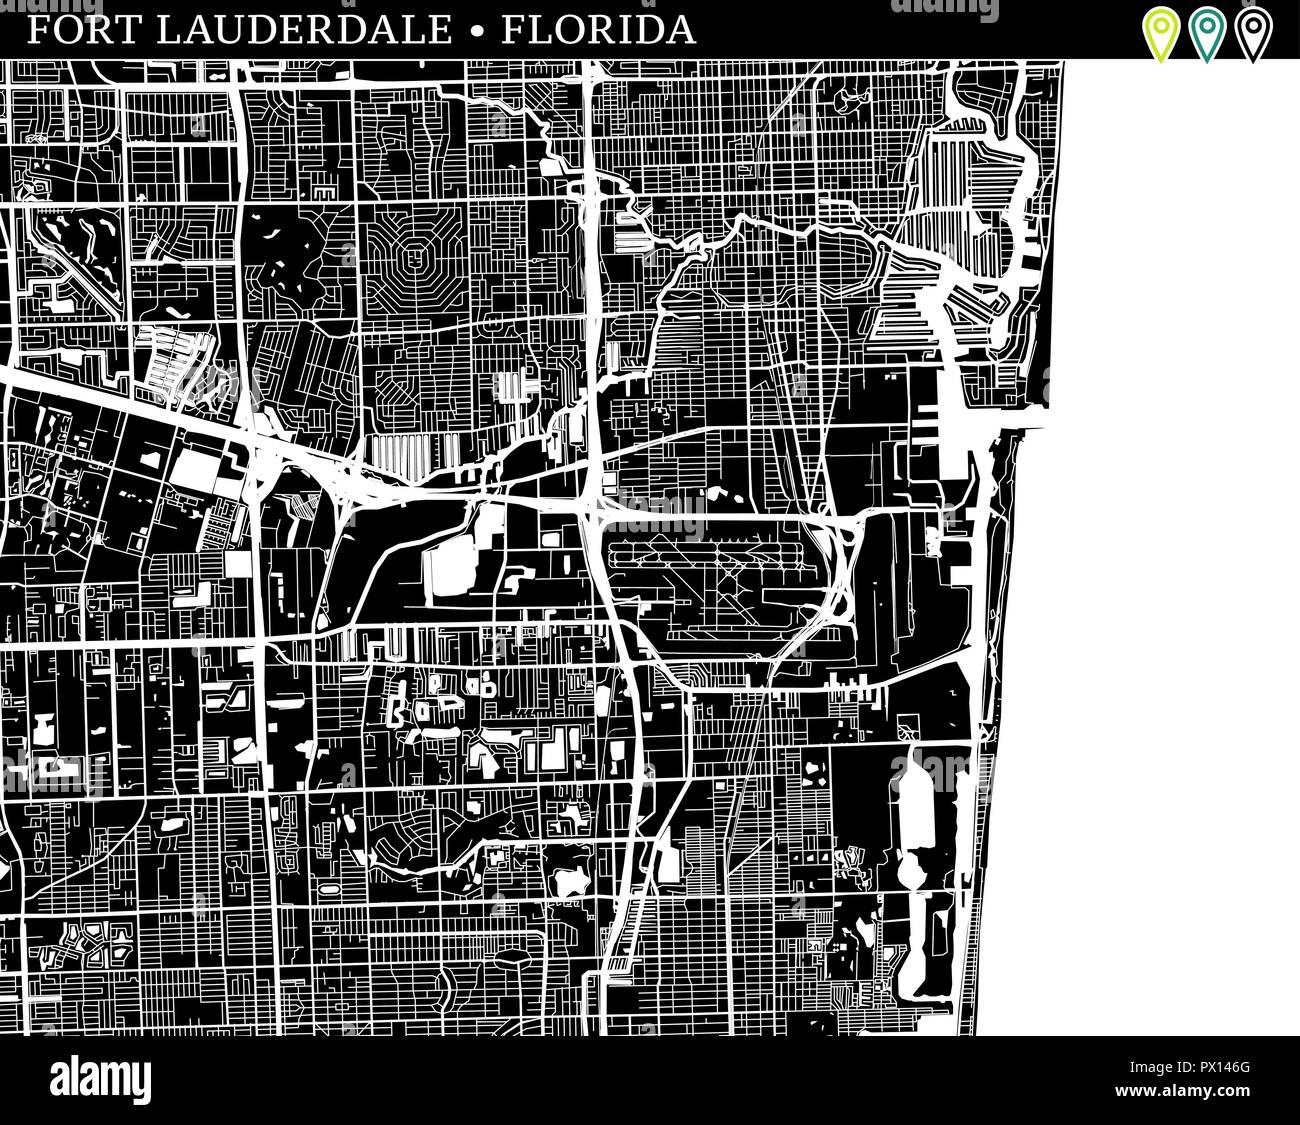 Map Of Fort Lauderdale Florida.Simple Map Of Fort Lauderdale Florida Usa Black And White Version